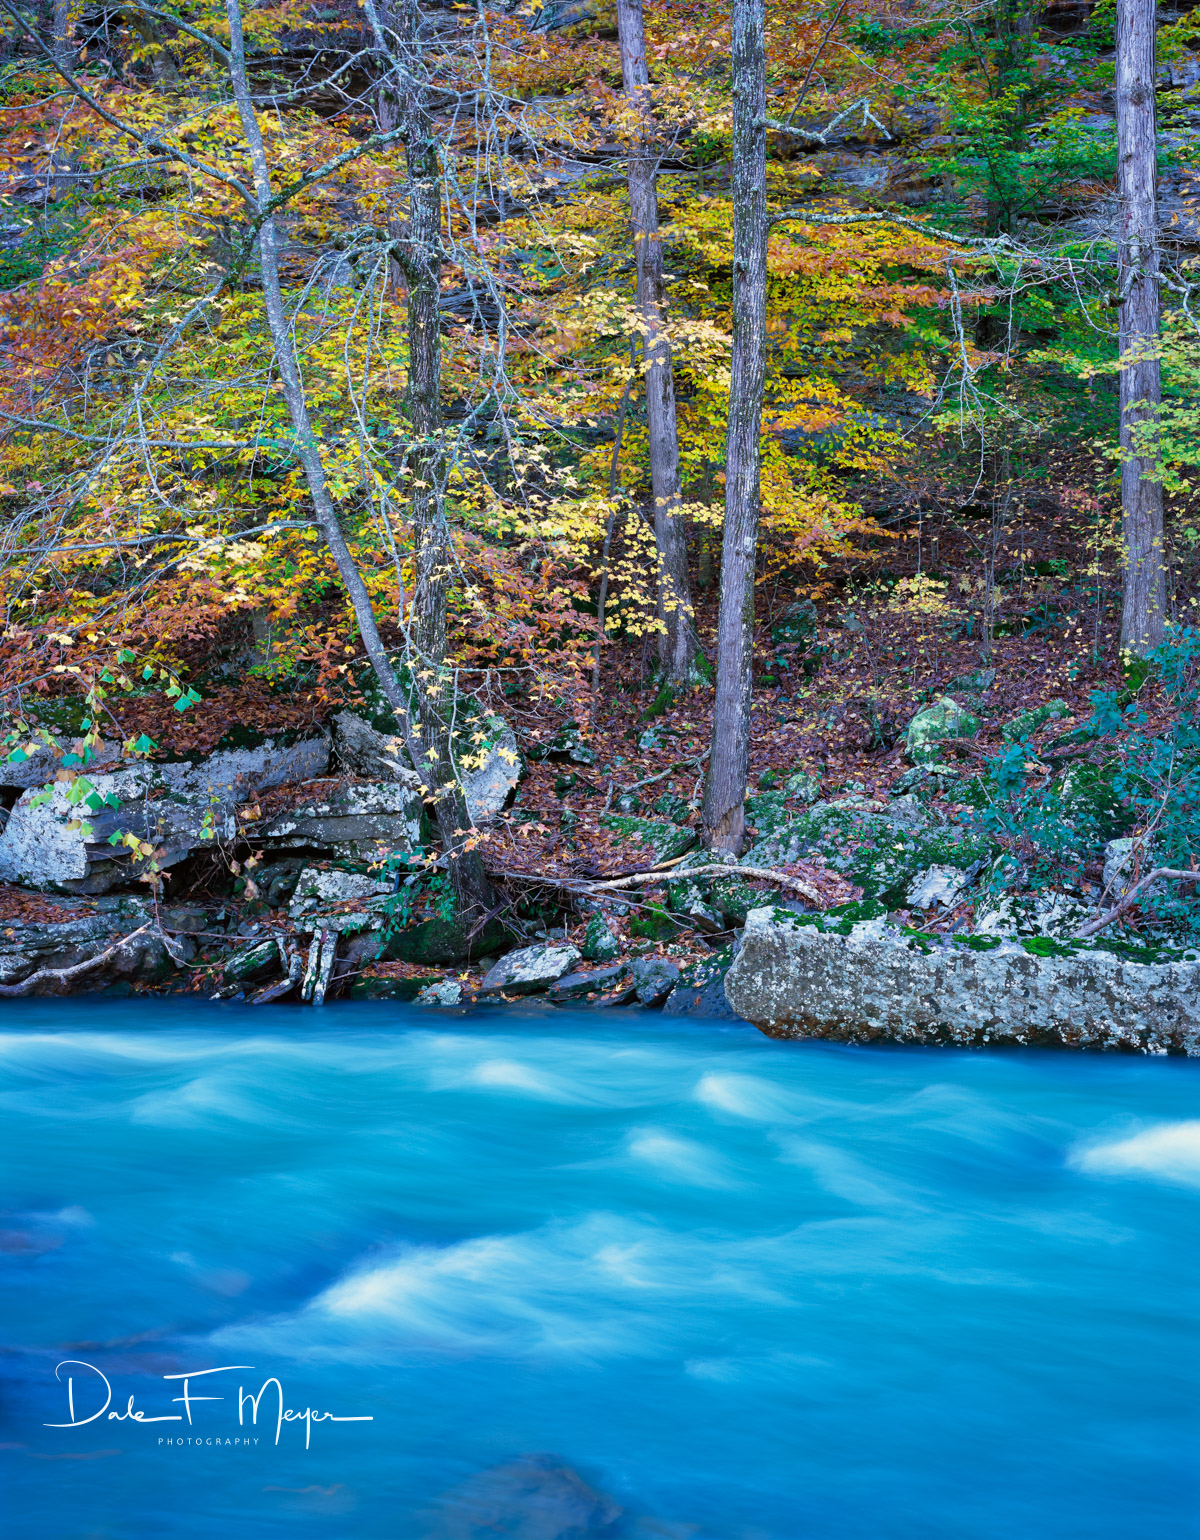 Fast Water, Mulberry River North Arkansas, fall, rivers streams and waterfalls gallerie, photo